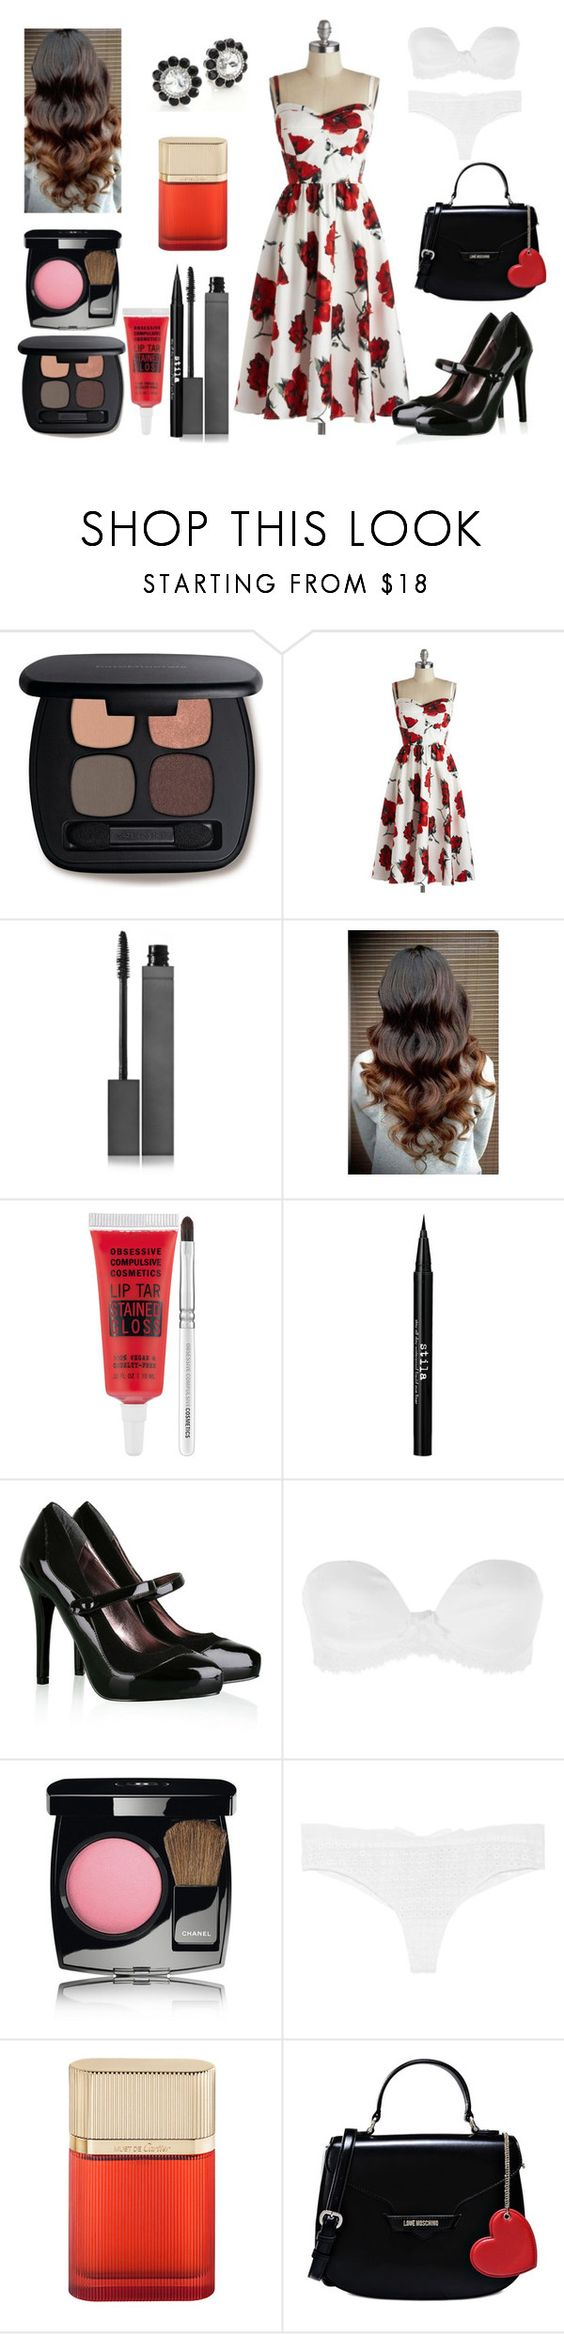 """""""Untitled #671"""" by miss-meghan-elizabeth ❤ liked on Polyvore featuring Bare Escentuals, Stop Staring!, Burberry, Obsessive Compulsive Cosmetics, Stila, Steve Madden, Simone Perele, Chanel, Madame Aime and Cartier"""